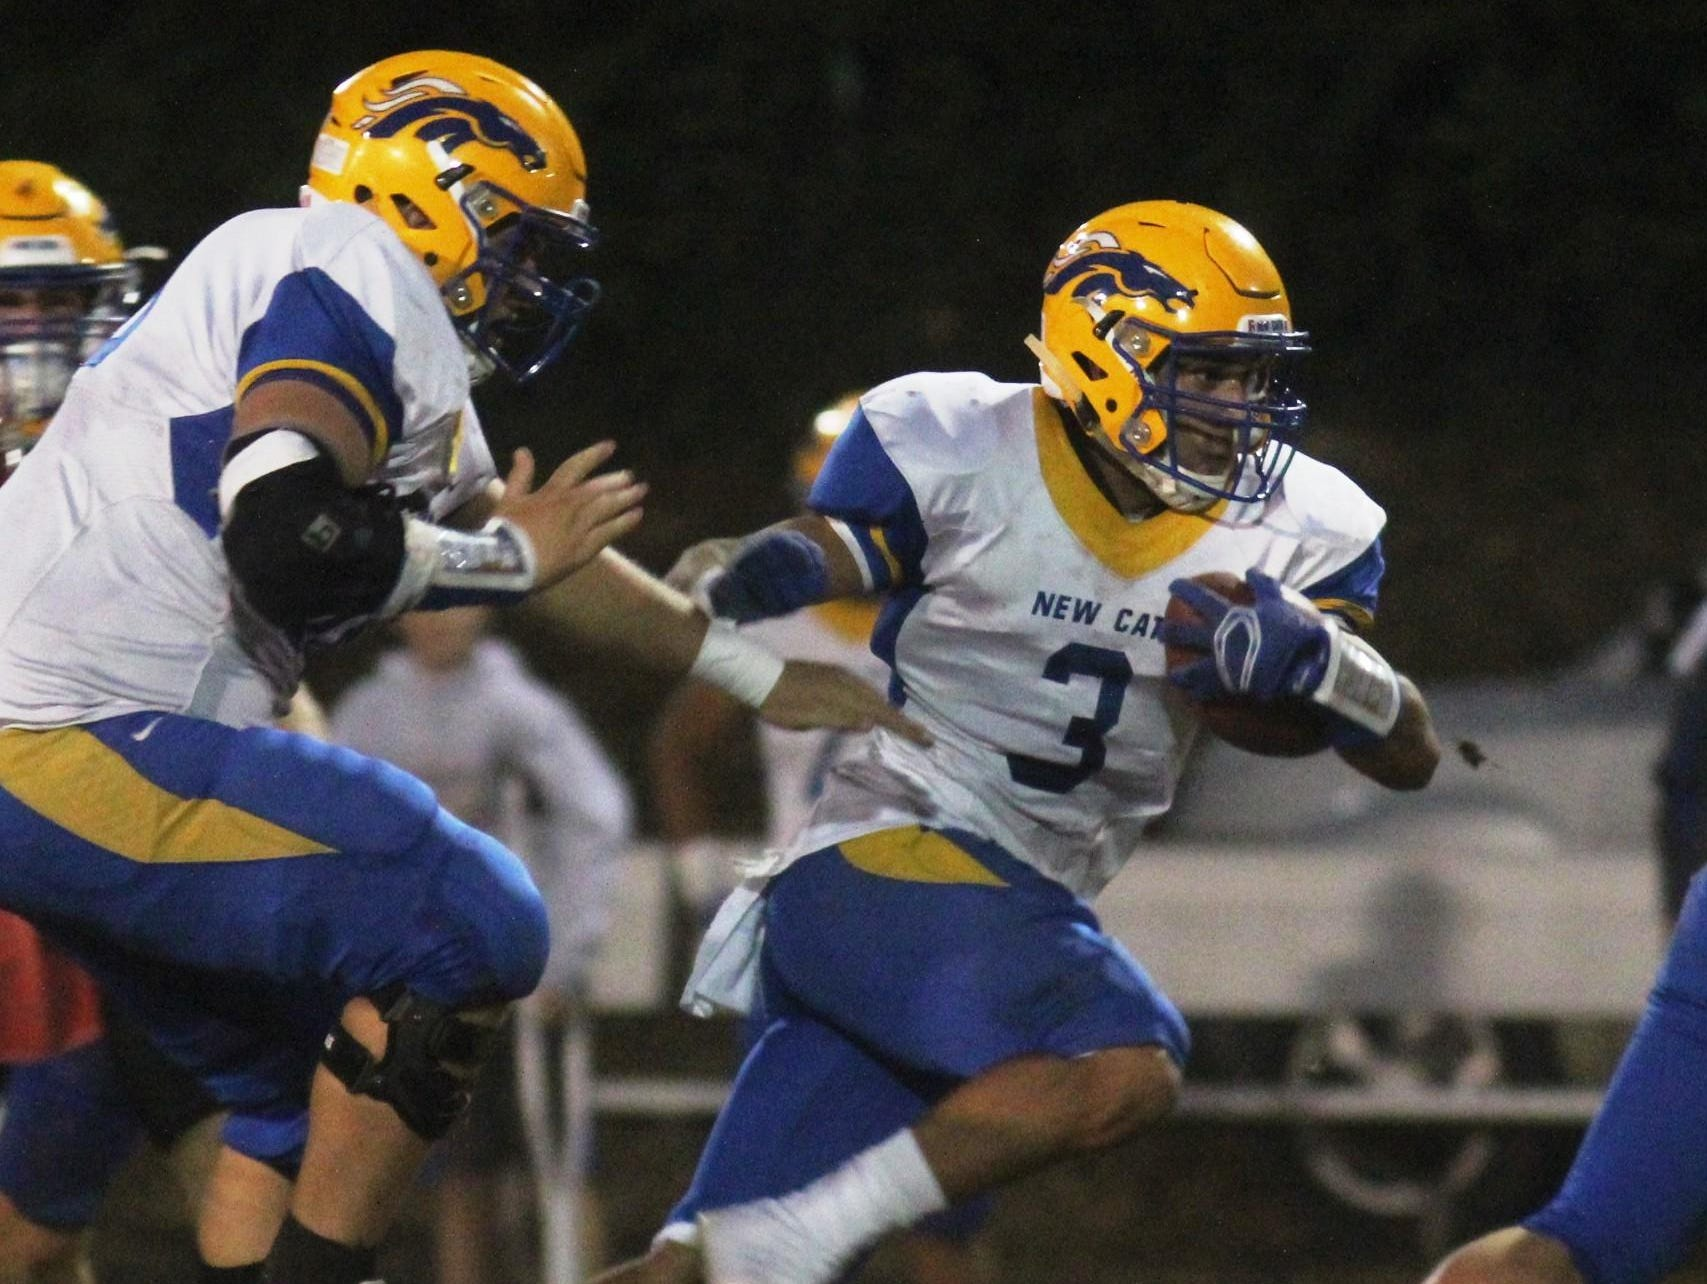 NewCath running back Jake Smith has been a workhorse this season. He has rushed for 1,370 yards and 15 touchdowns in nine games.